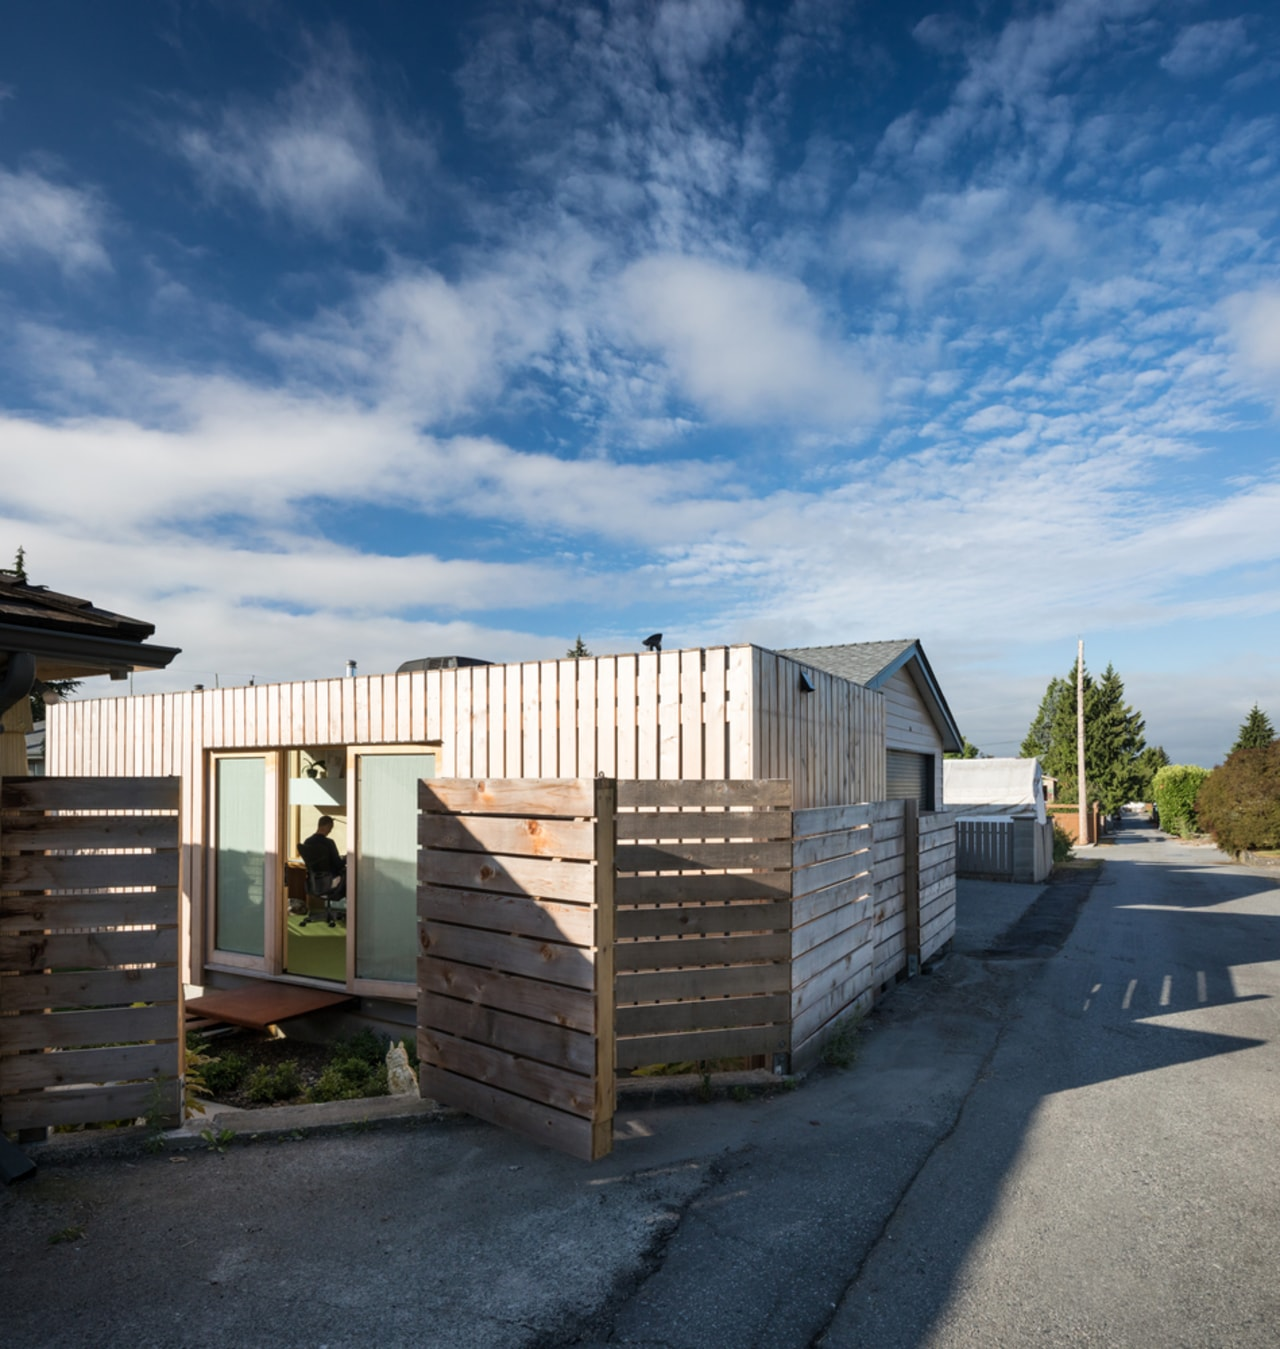 The Rba Office is unobtrusive within the street architecture, building, cloud, cottage, facade, home, house, property, real estate, residential area, roof, shed, siding, sky, wood, black